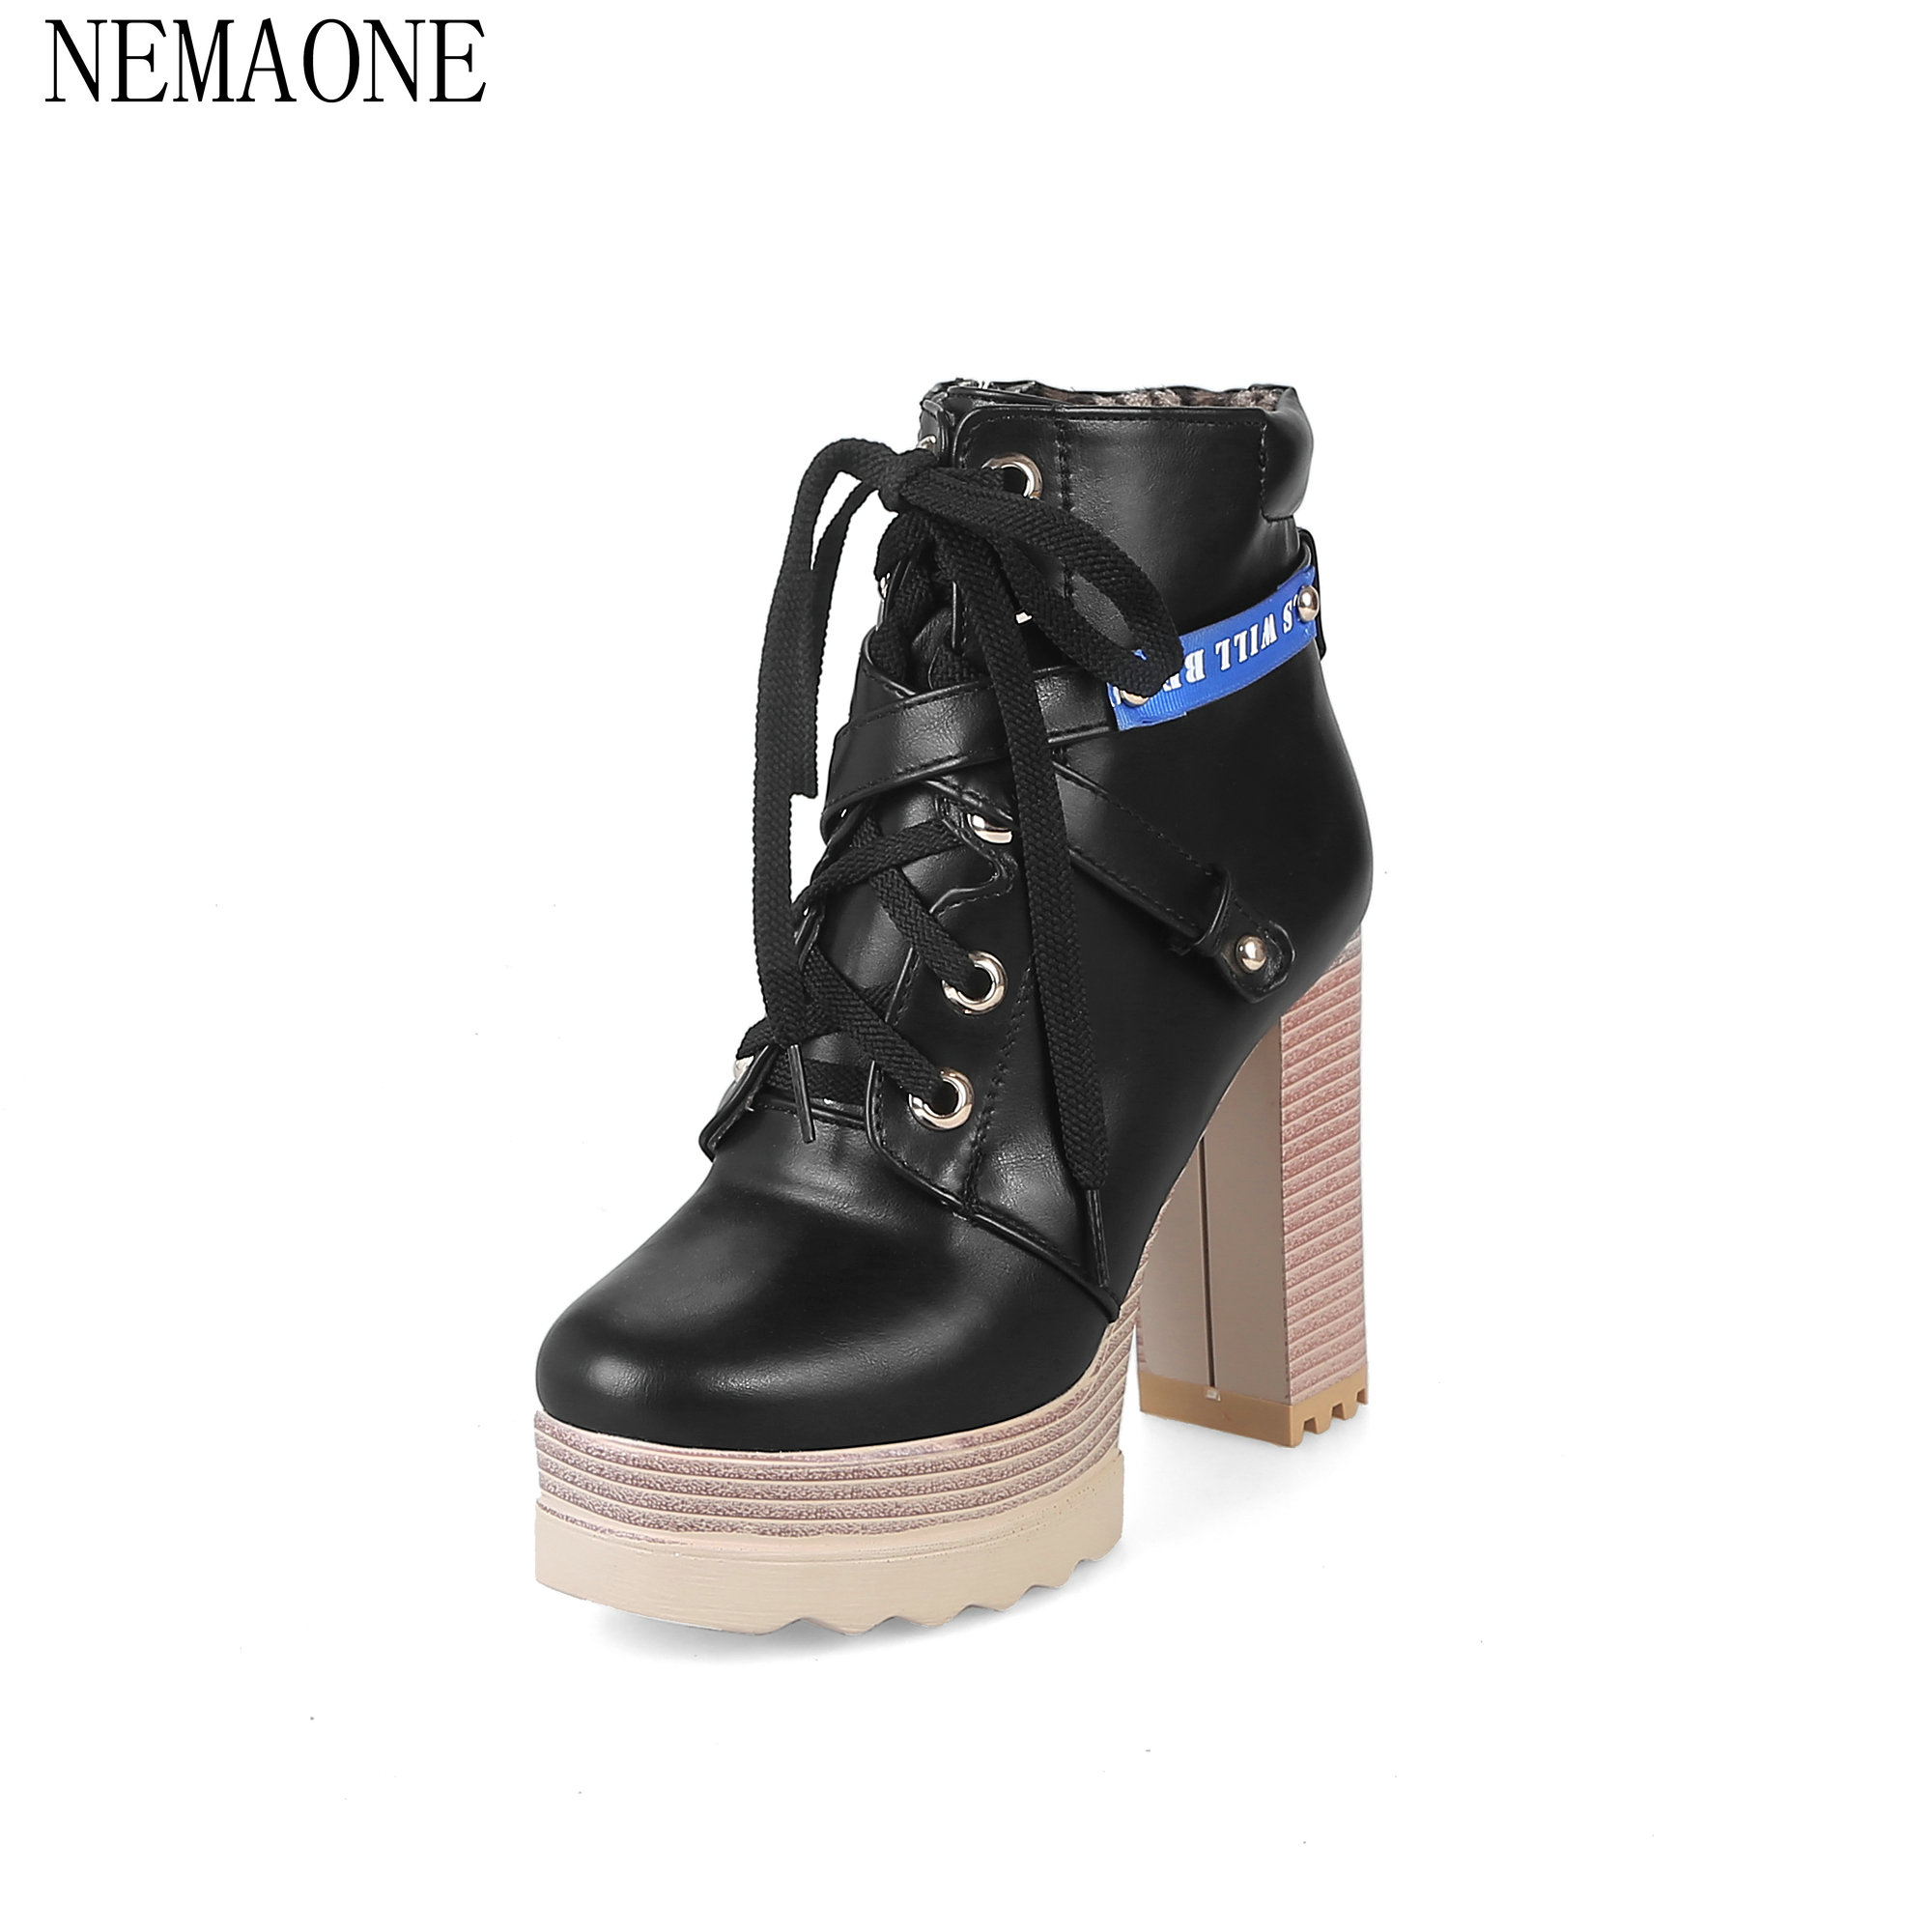 NEMAONE Women Thick Heel Ankle Boots High Heels Shoes 2018 Autumn British Round Toe Fashion Ankle Boots Heels Platform<br>